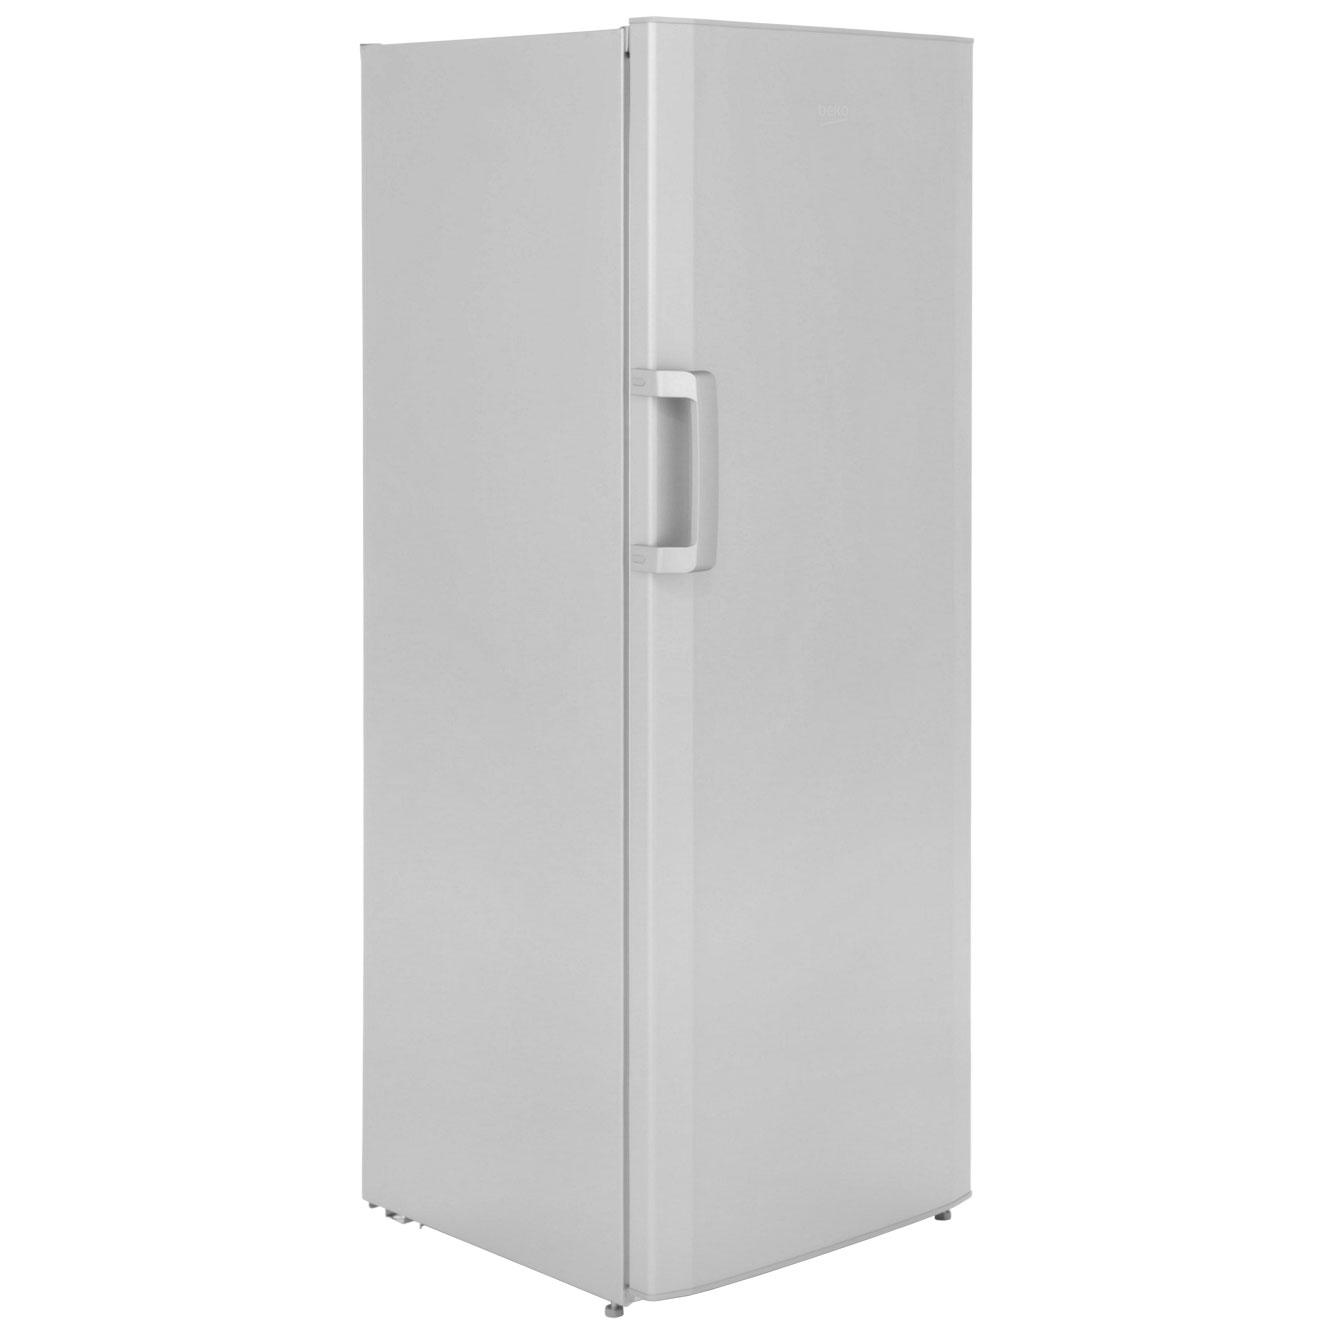 Beko TFFC671S Upright Freezer - Silver